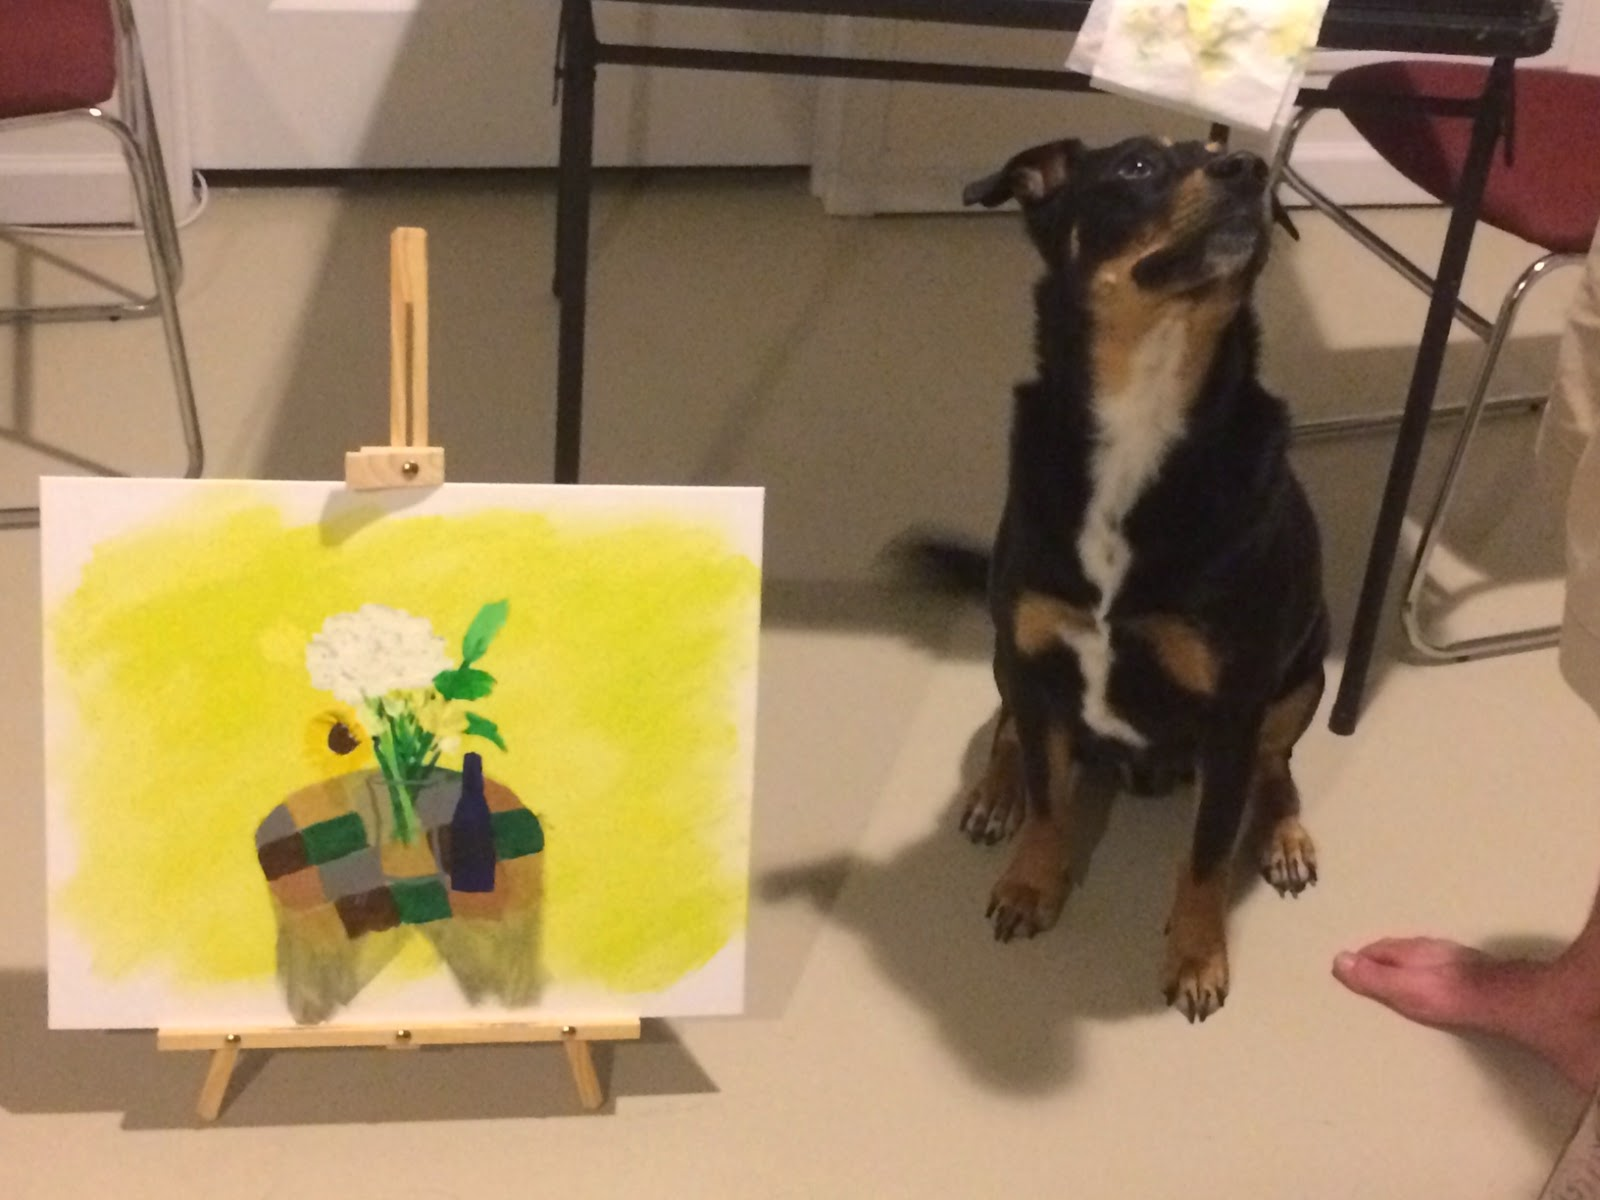 Still life painting and dog | Business, Life & Design